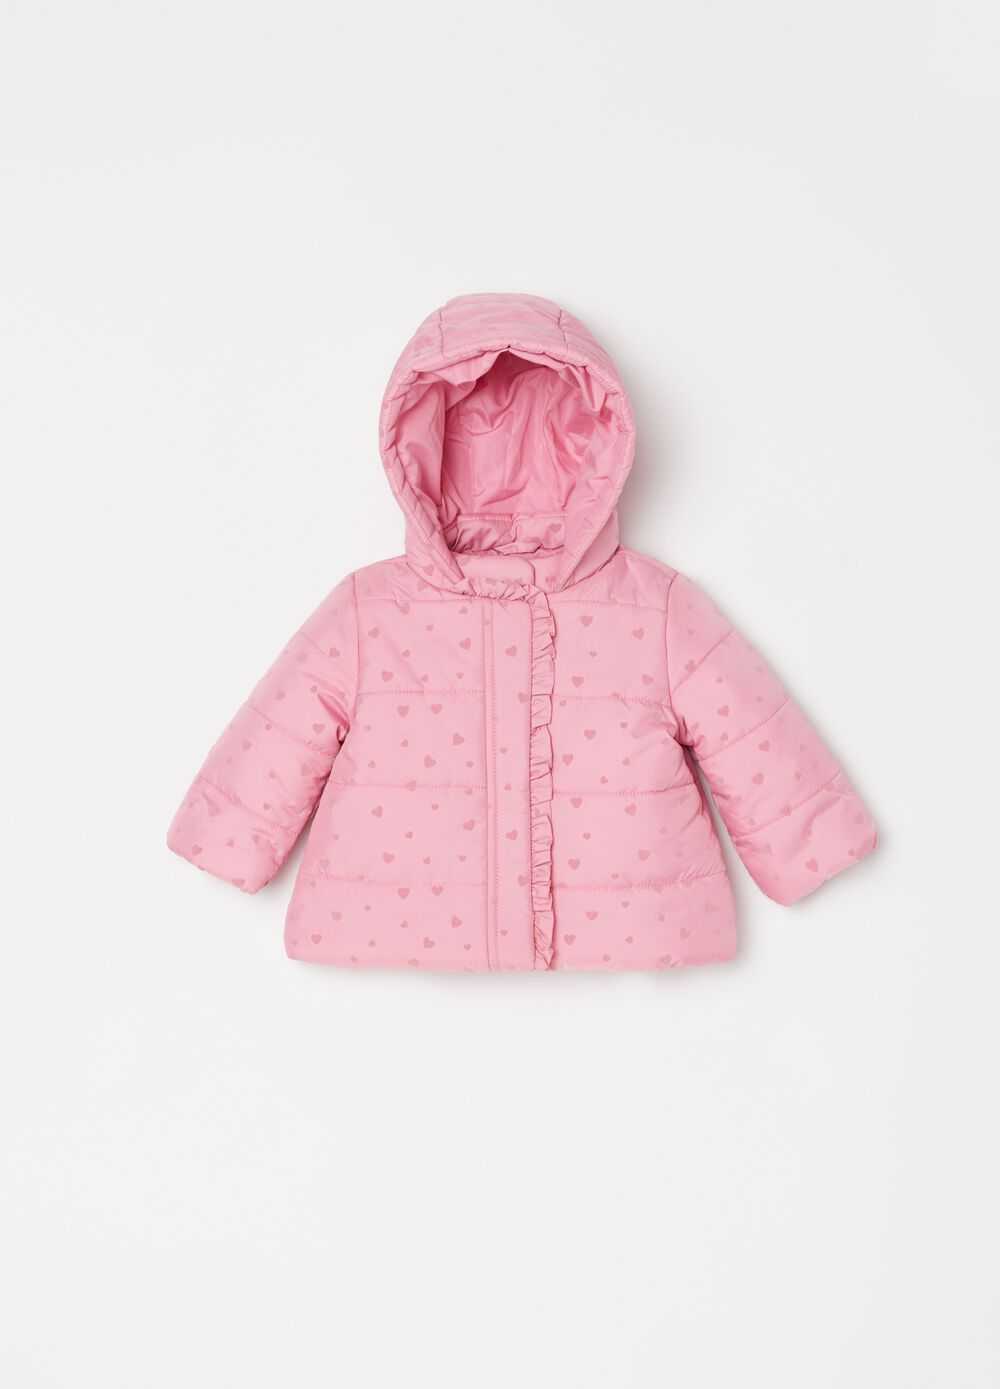 Padded jacket with hearts pattern